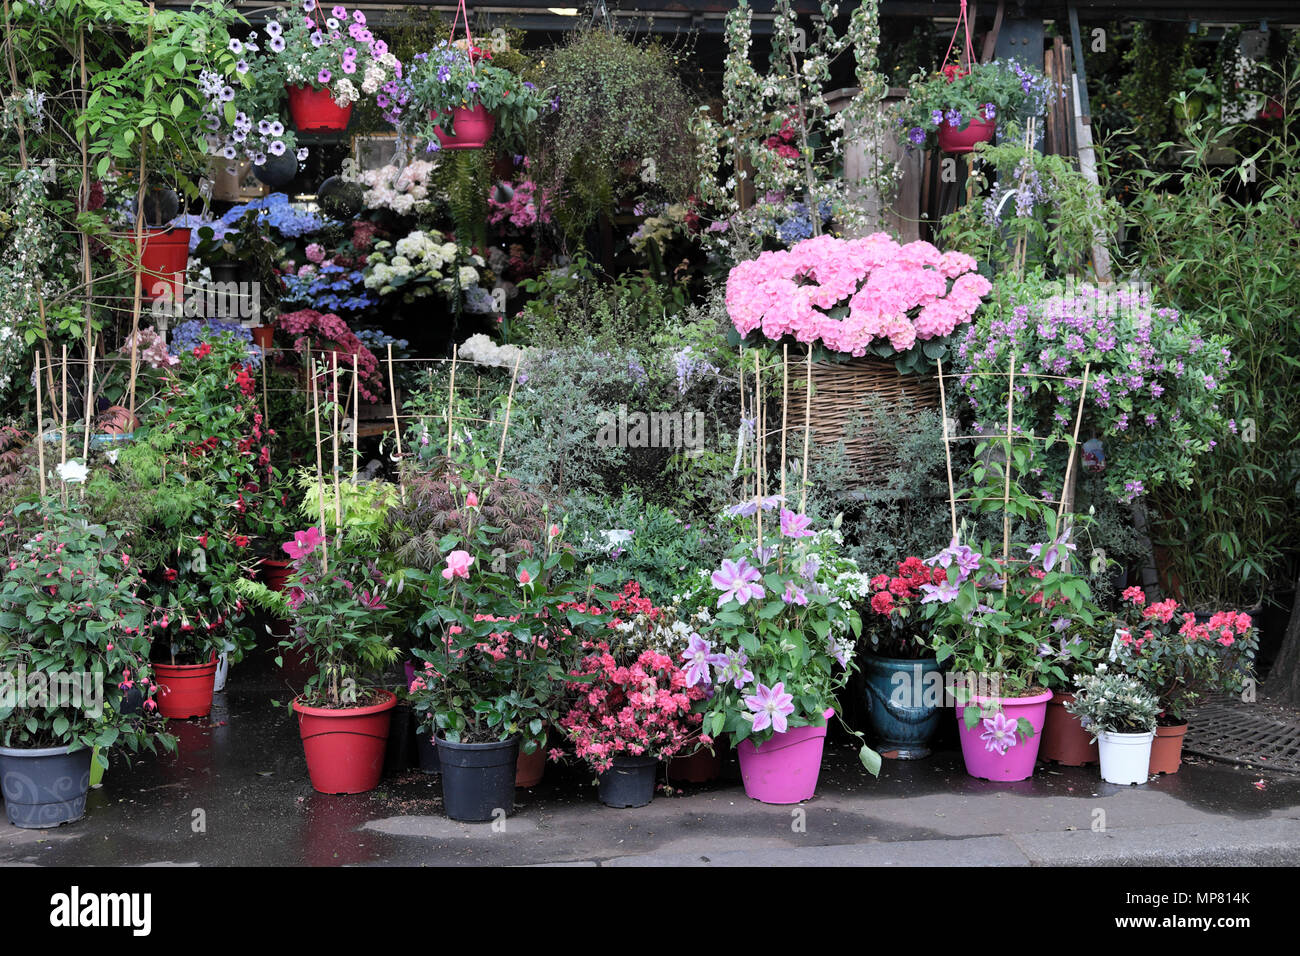 Île de la Cité Flower Market group of plant pots in a Left Bank garden at Left Bank gardening shop, Place Lepine Paris France Europe EU  KATHY DEWITT - Stock Image